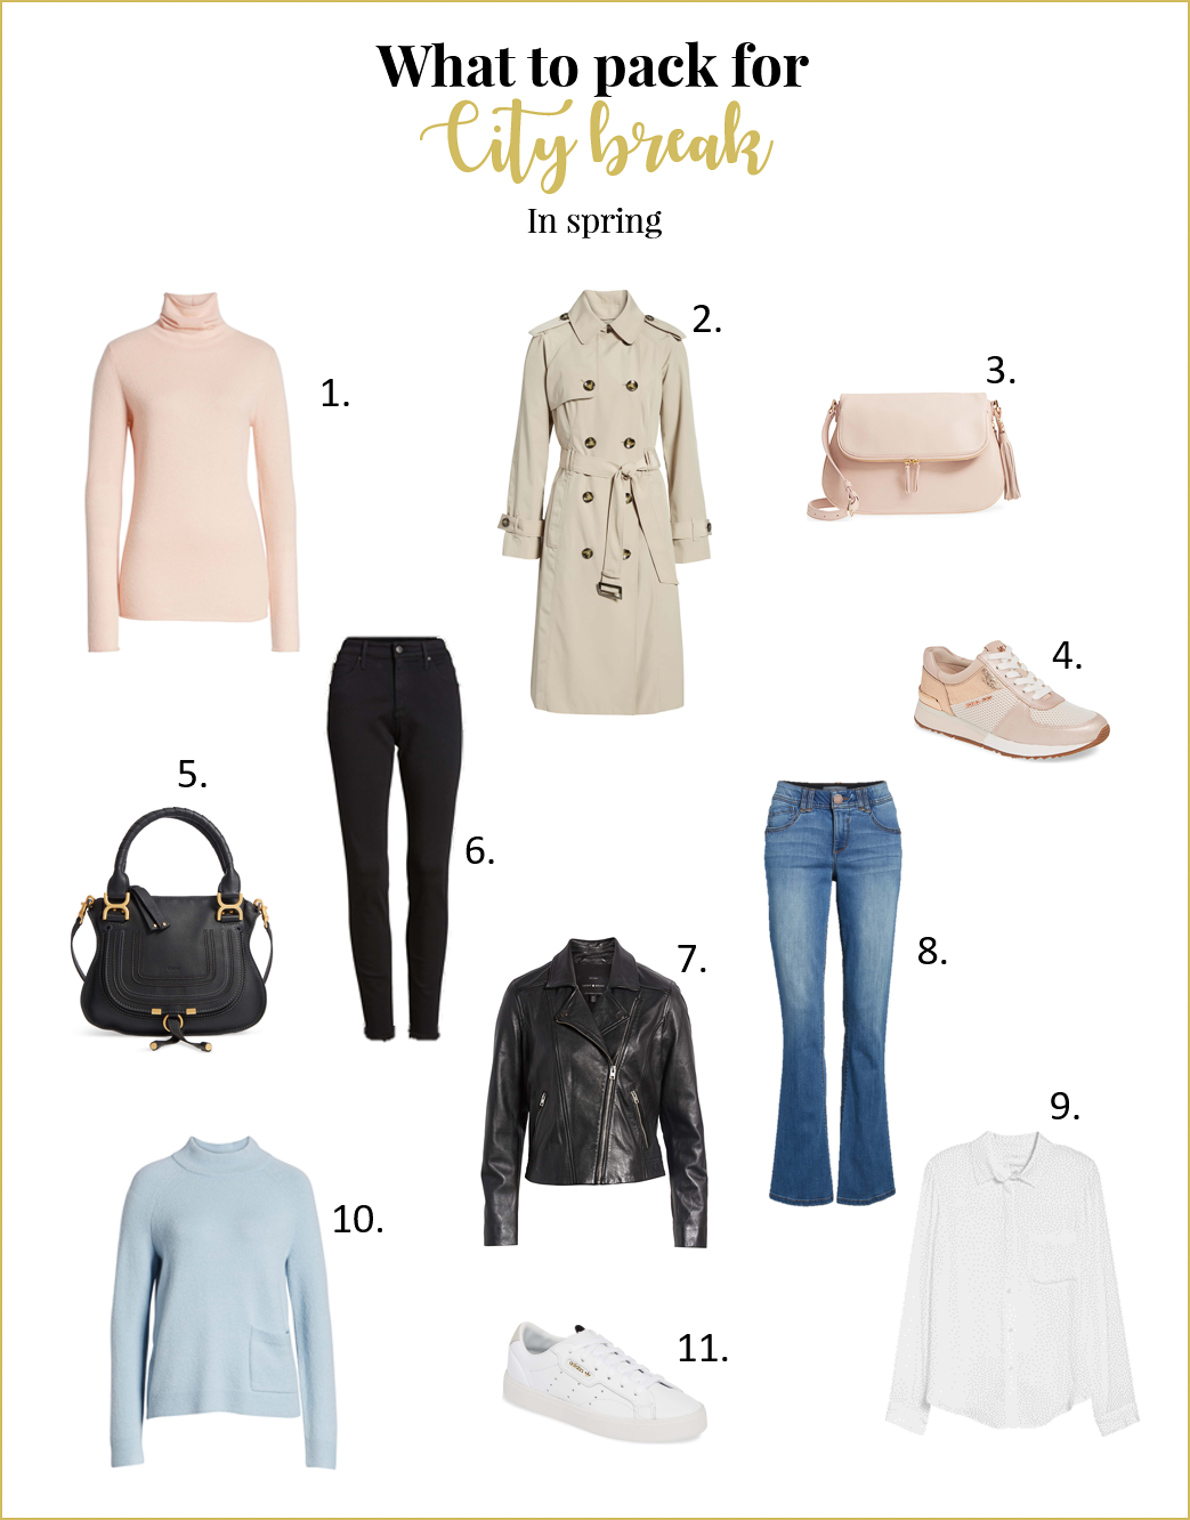 What to pack for your city break in spring